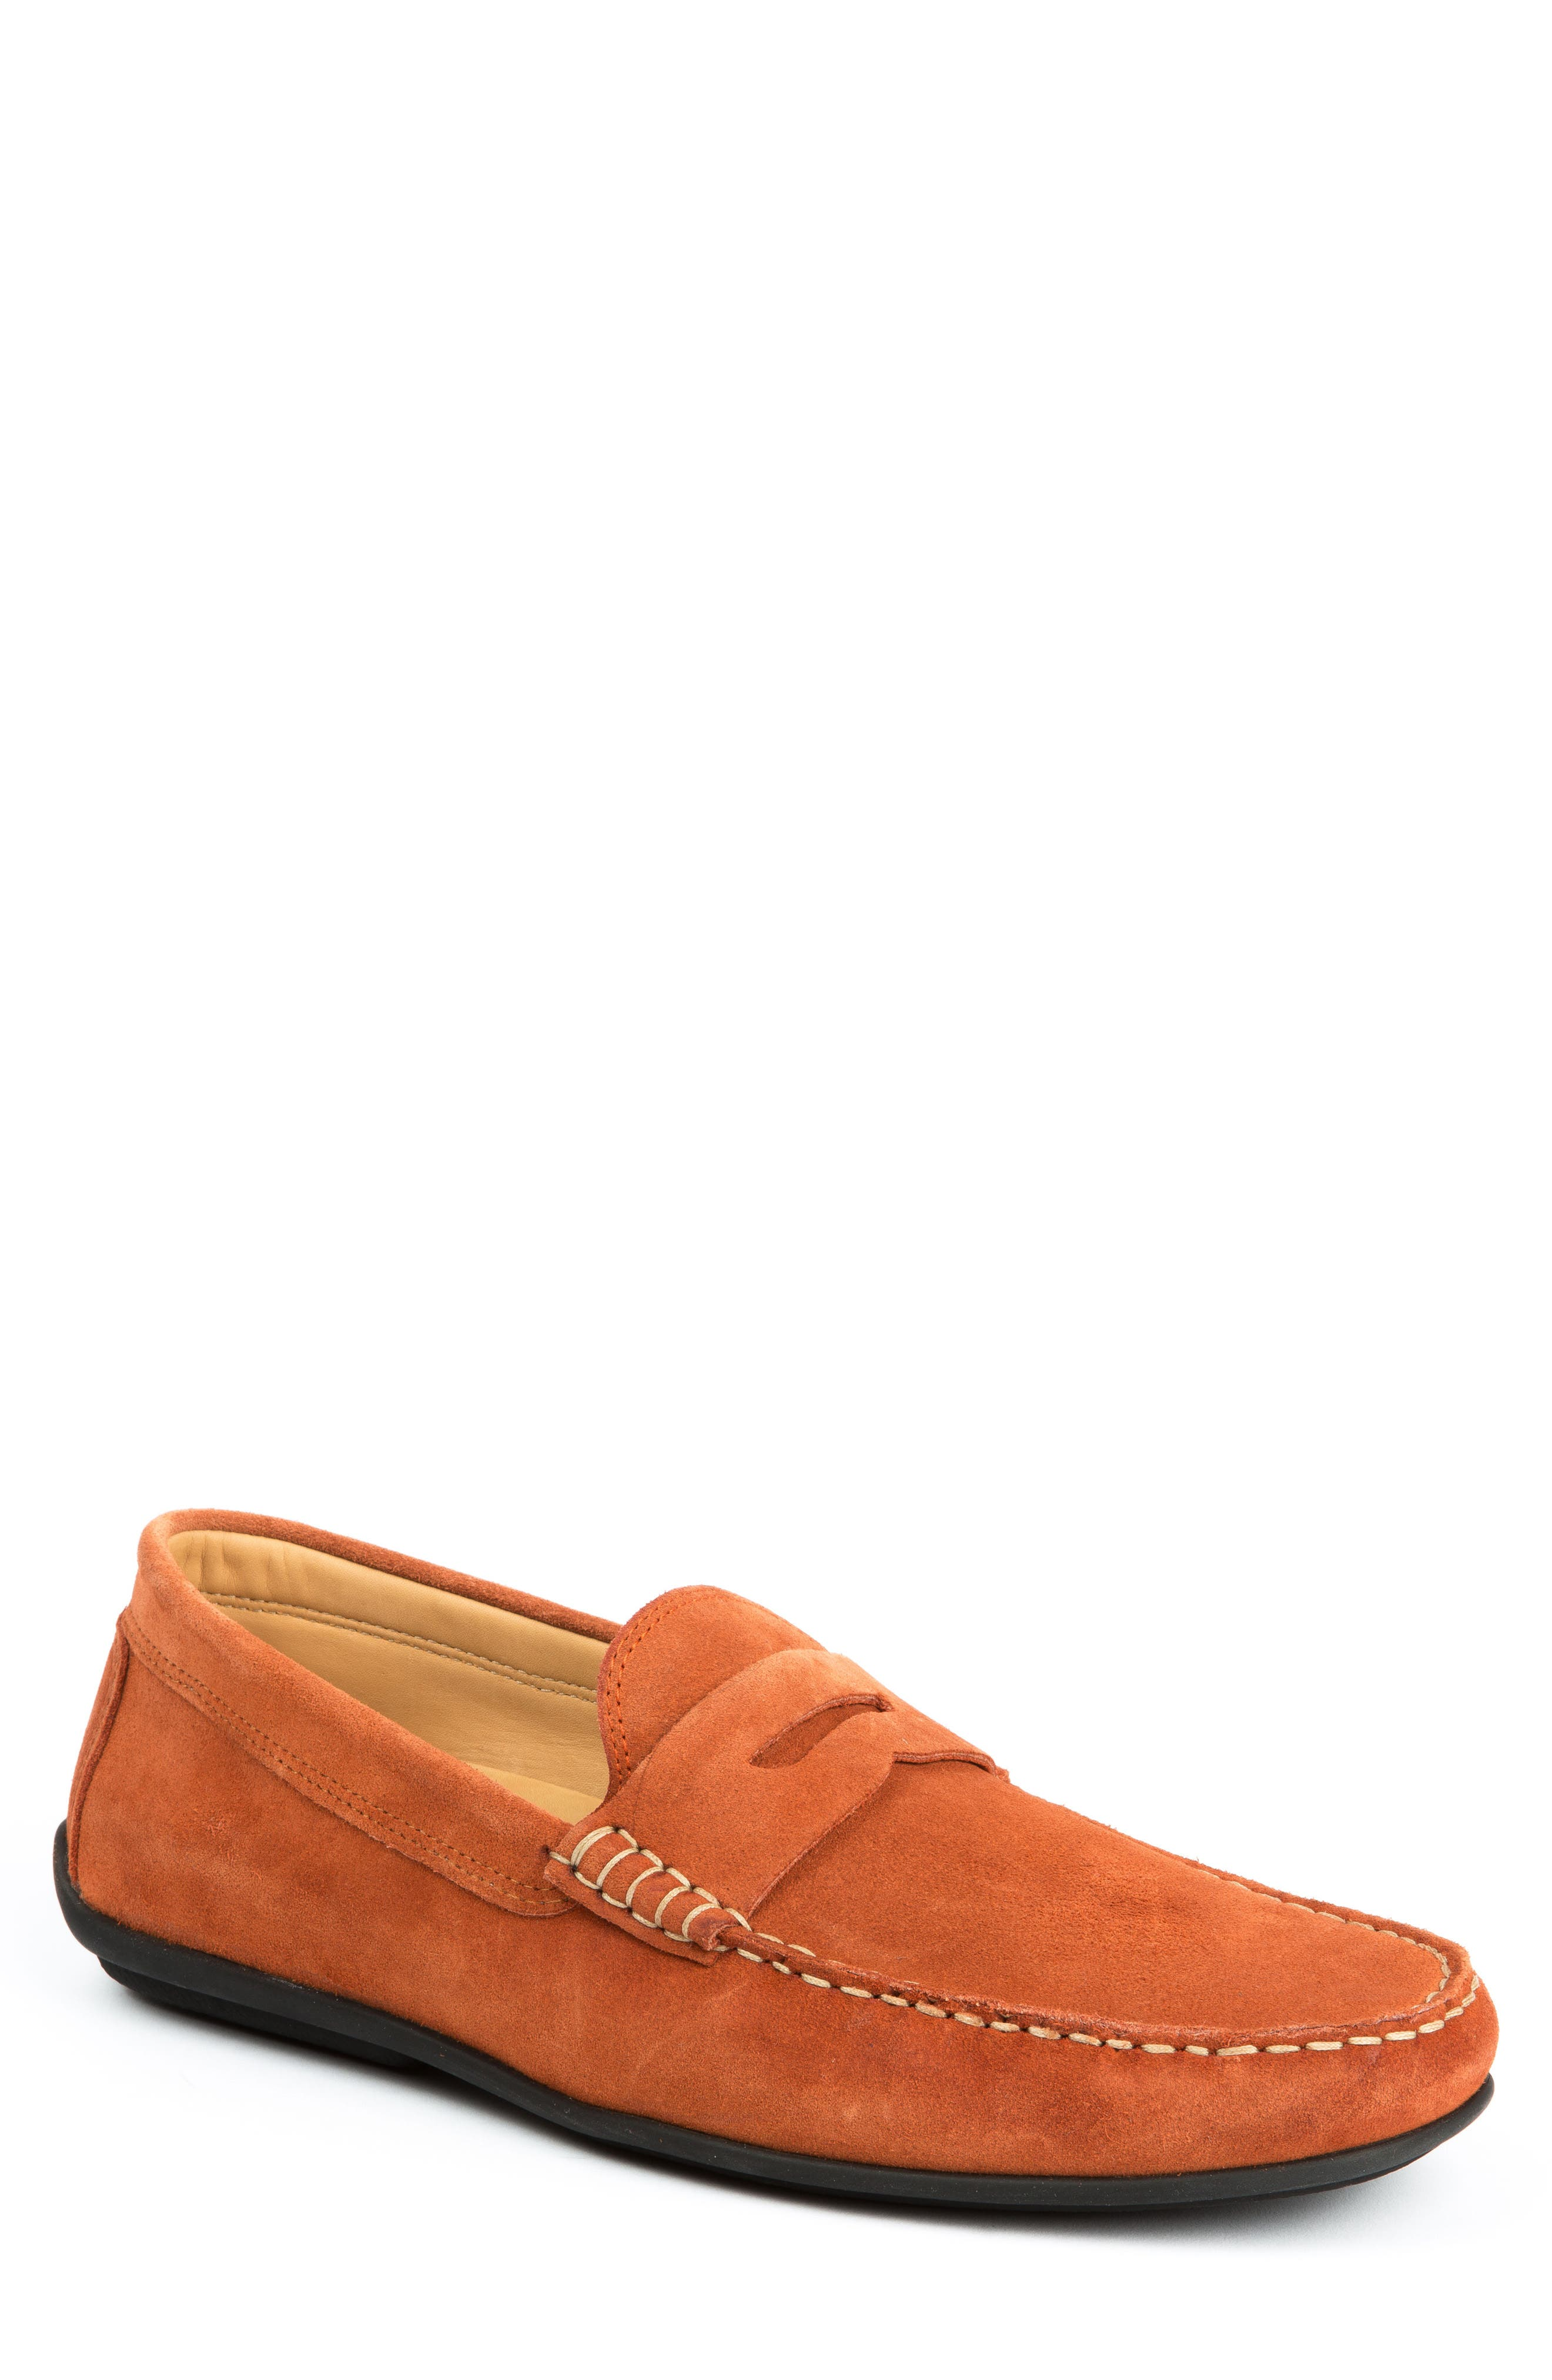 Peytons Driving Shoe,                         Main,                         color, BRICK SUEDE